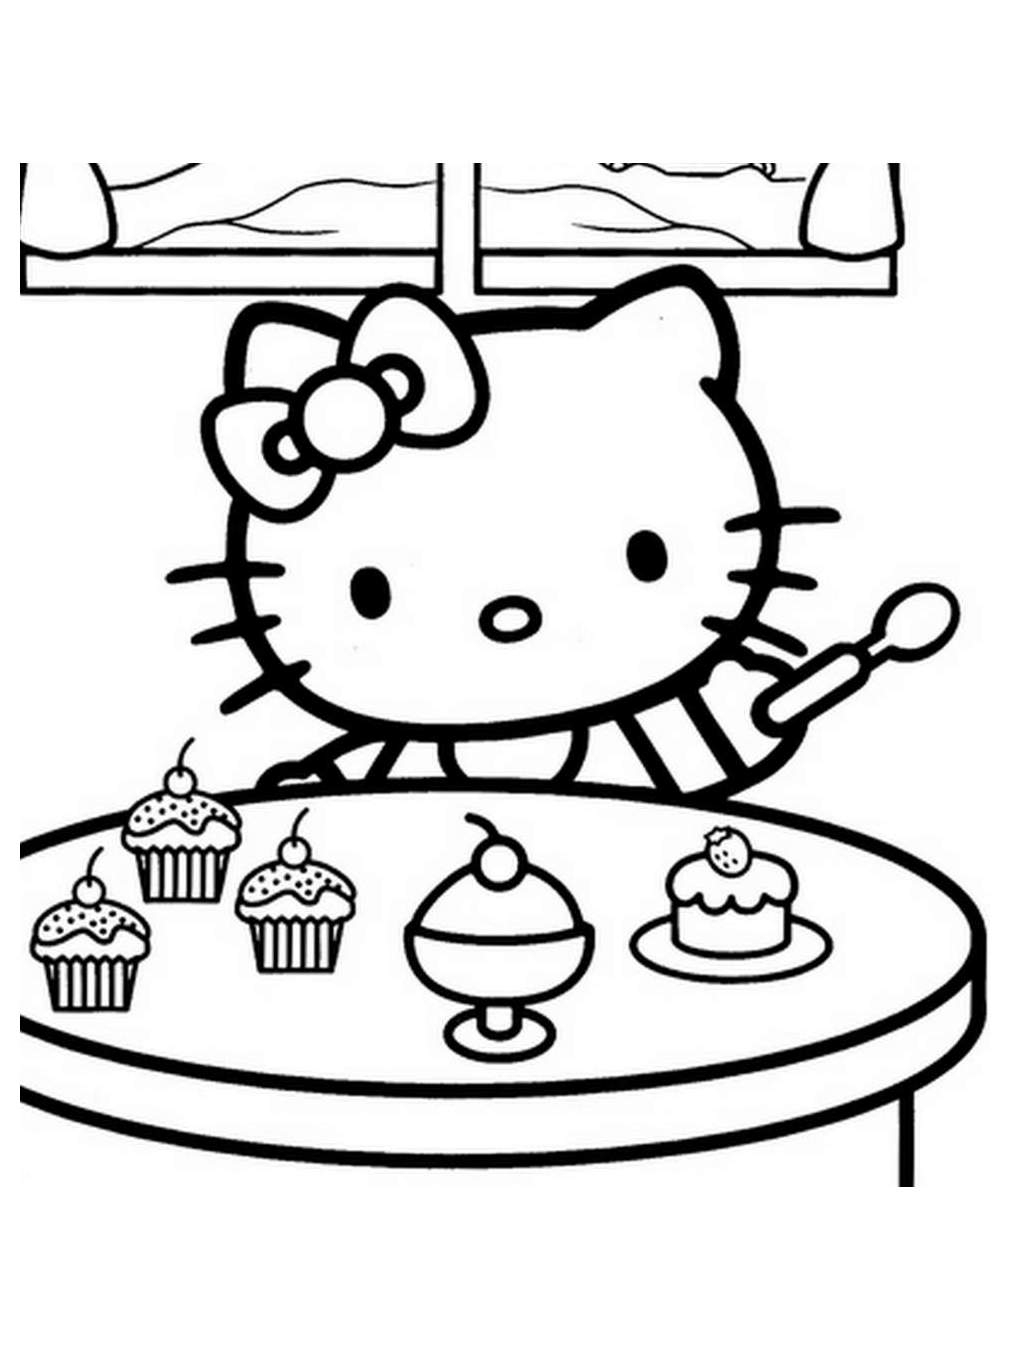 Coloriage De Hello Kitty À Colorier Pour Enfants destiné Hello Kitty À Dessiner